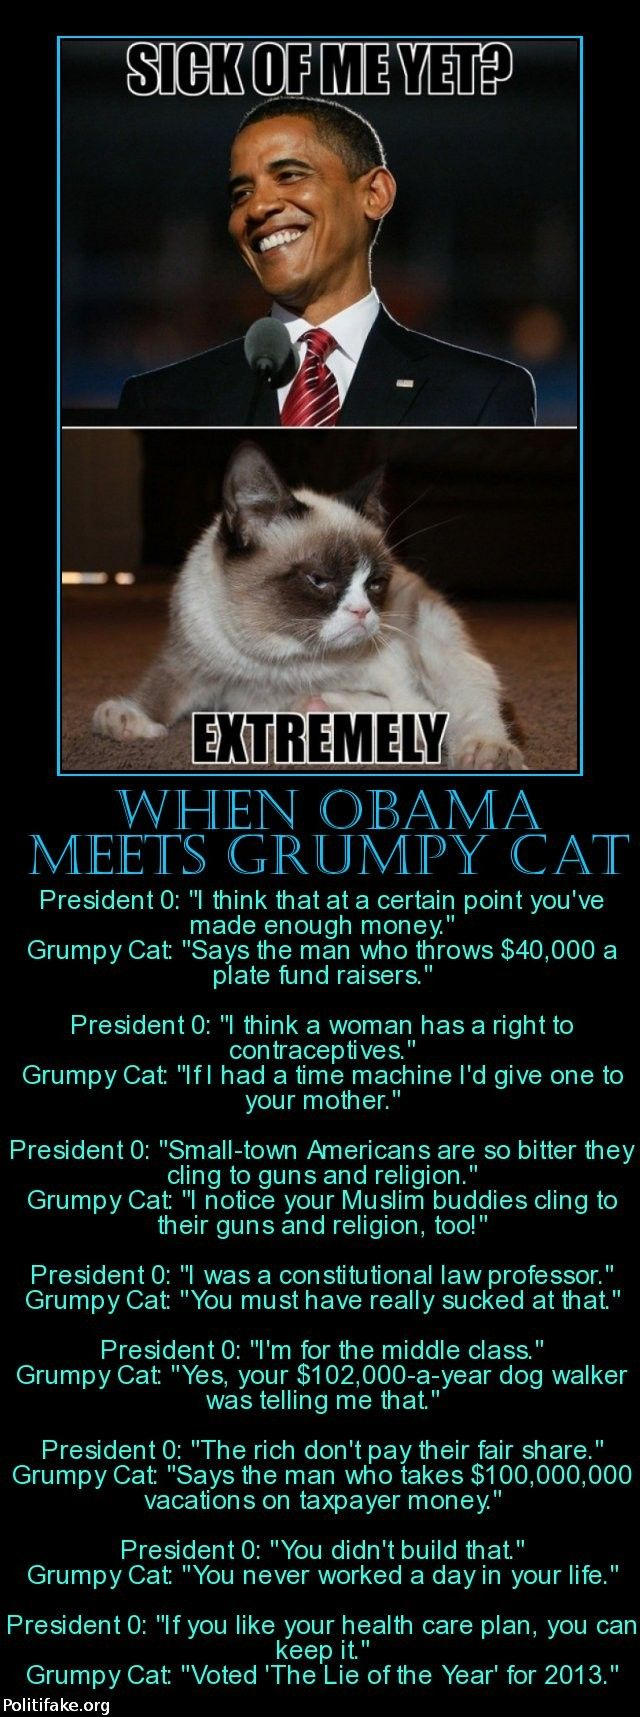 politics When Obama meets Grumpy Cat